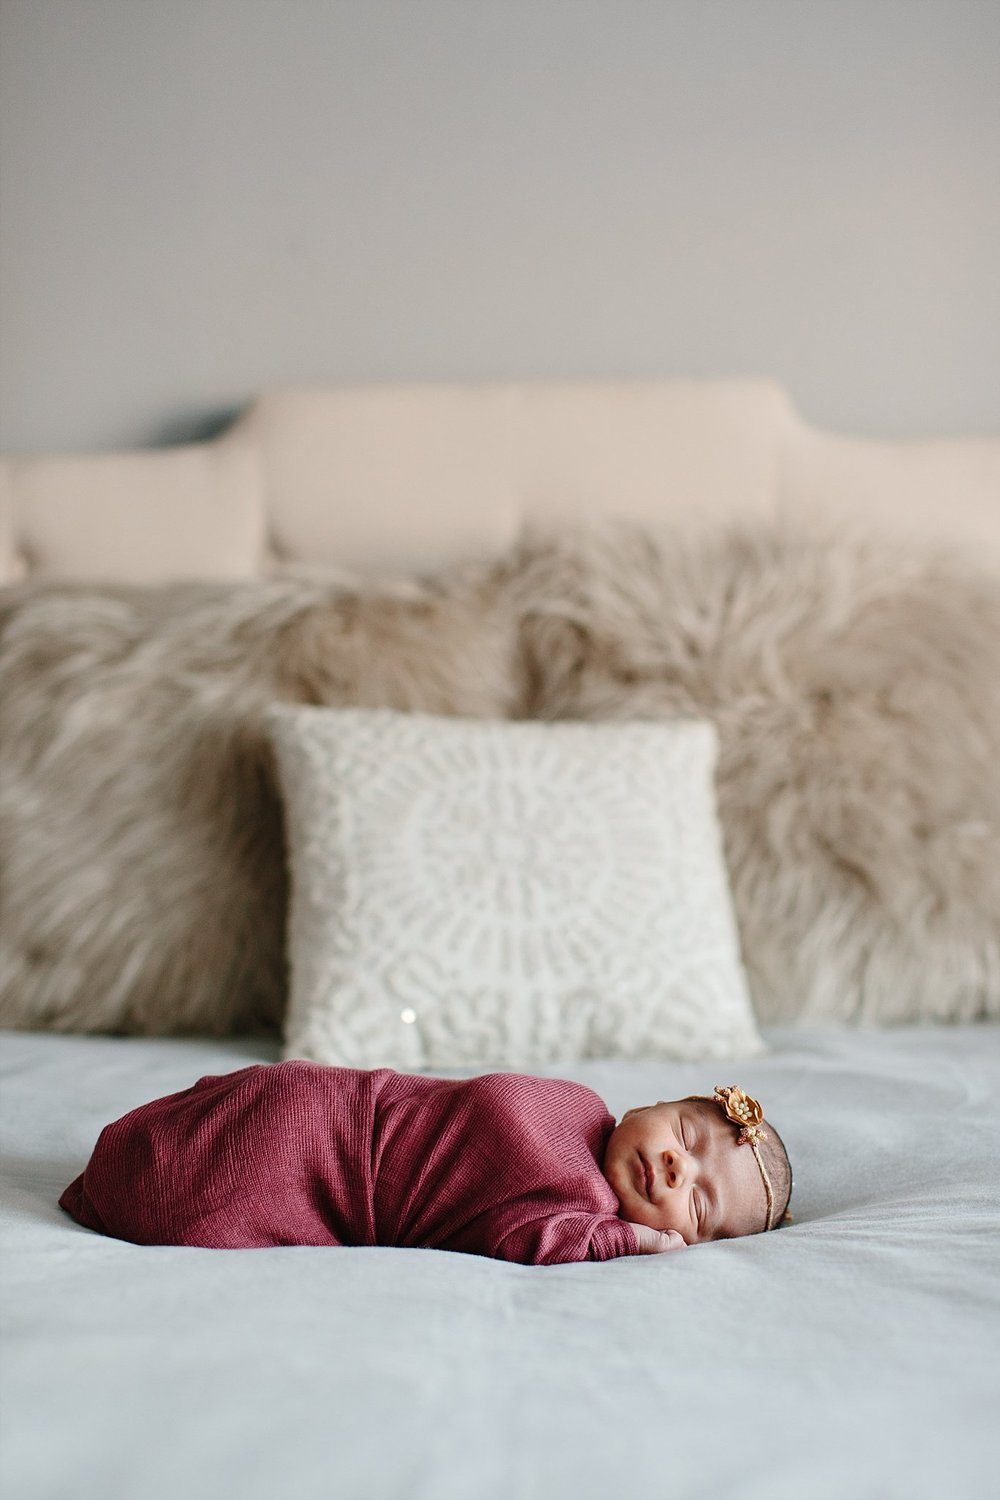 maternity-photography-okc-newborn-oklahoma-studio-lifestyle-bed.jpg